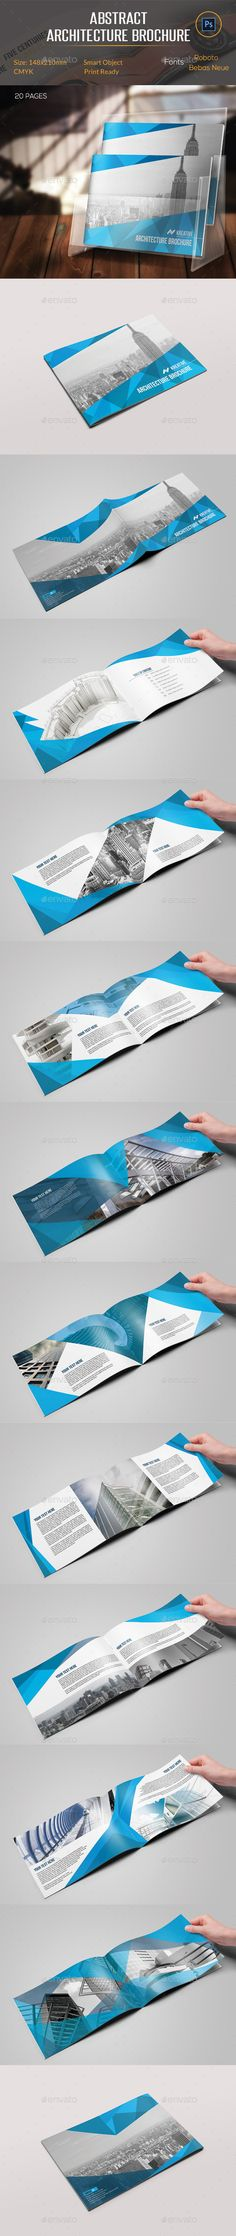 Abstract Architecture Brochure — Photoshop PSD #building #advertising • Available here → https://graphicriver.net/item/abstract-architecture-brochure/11175213?ref=pxcr